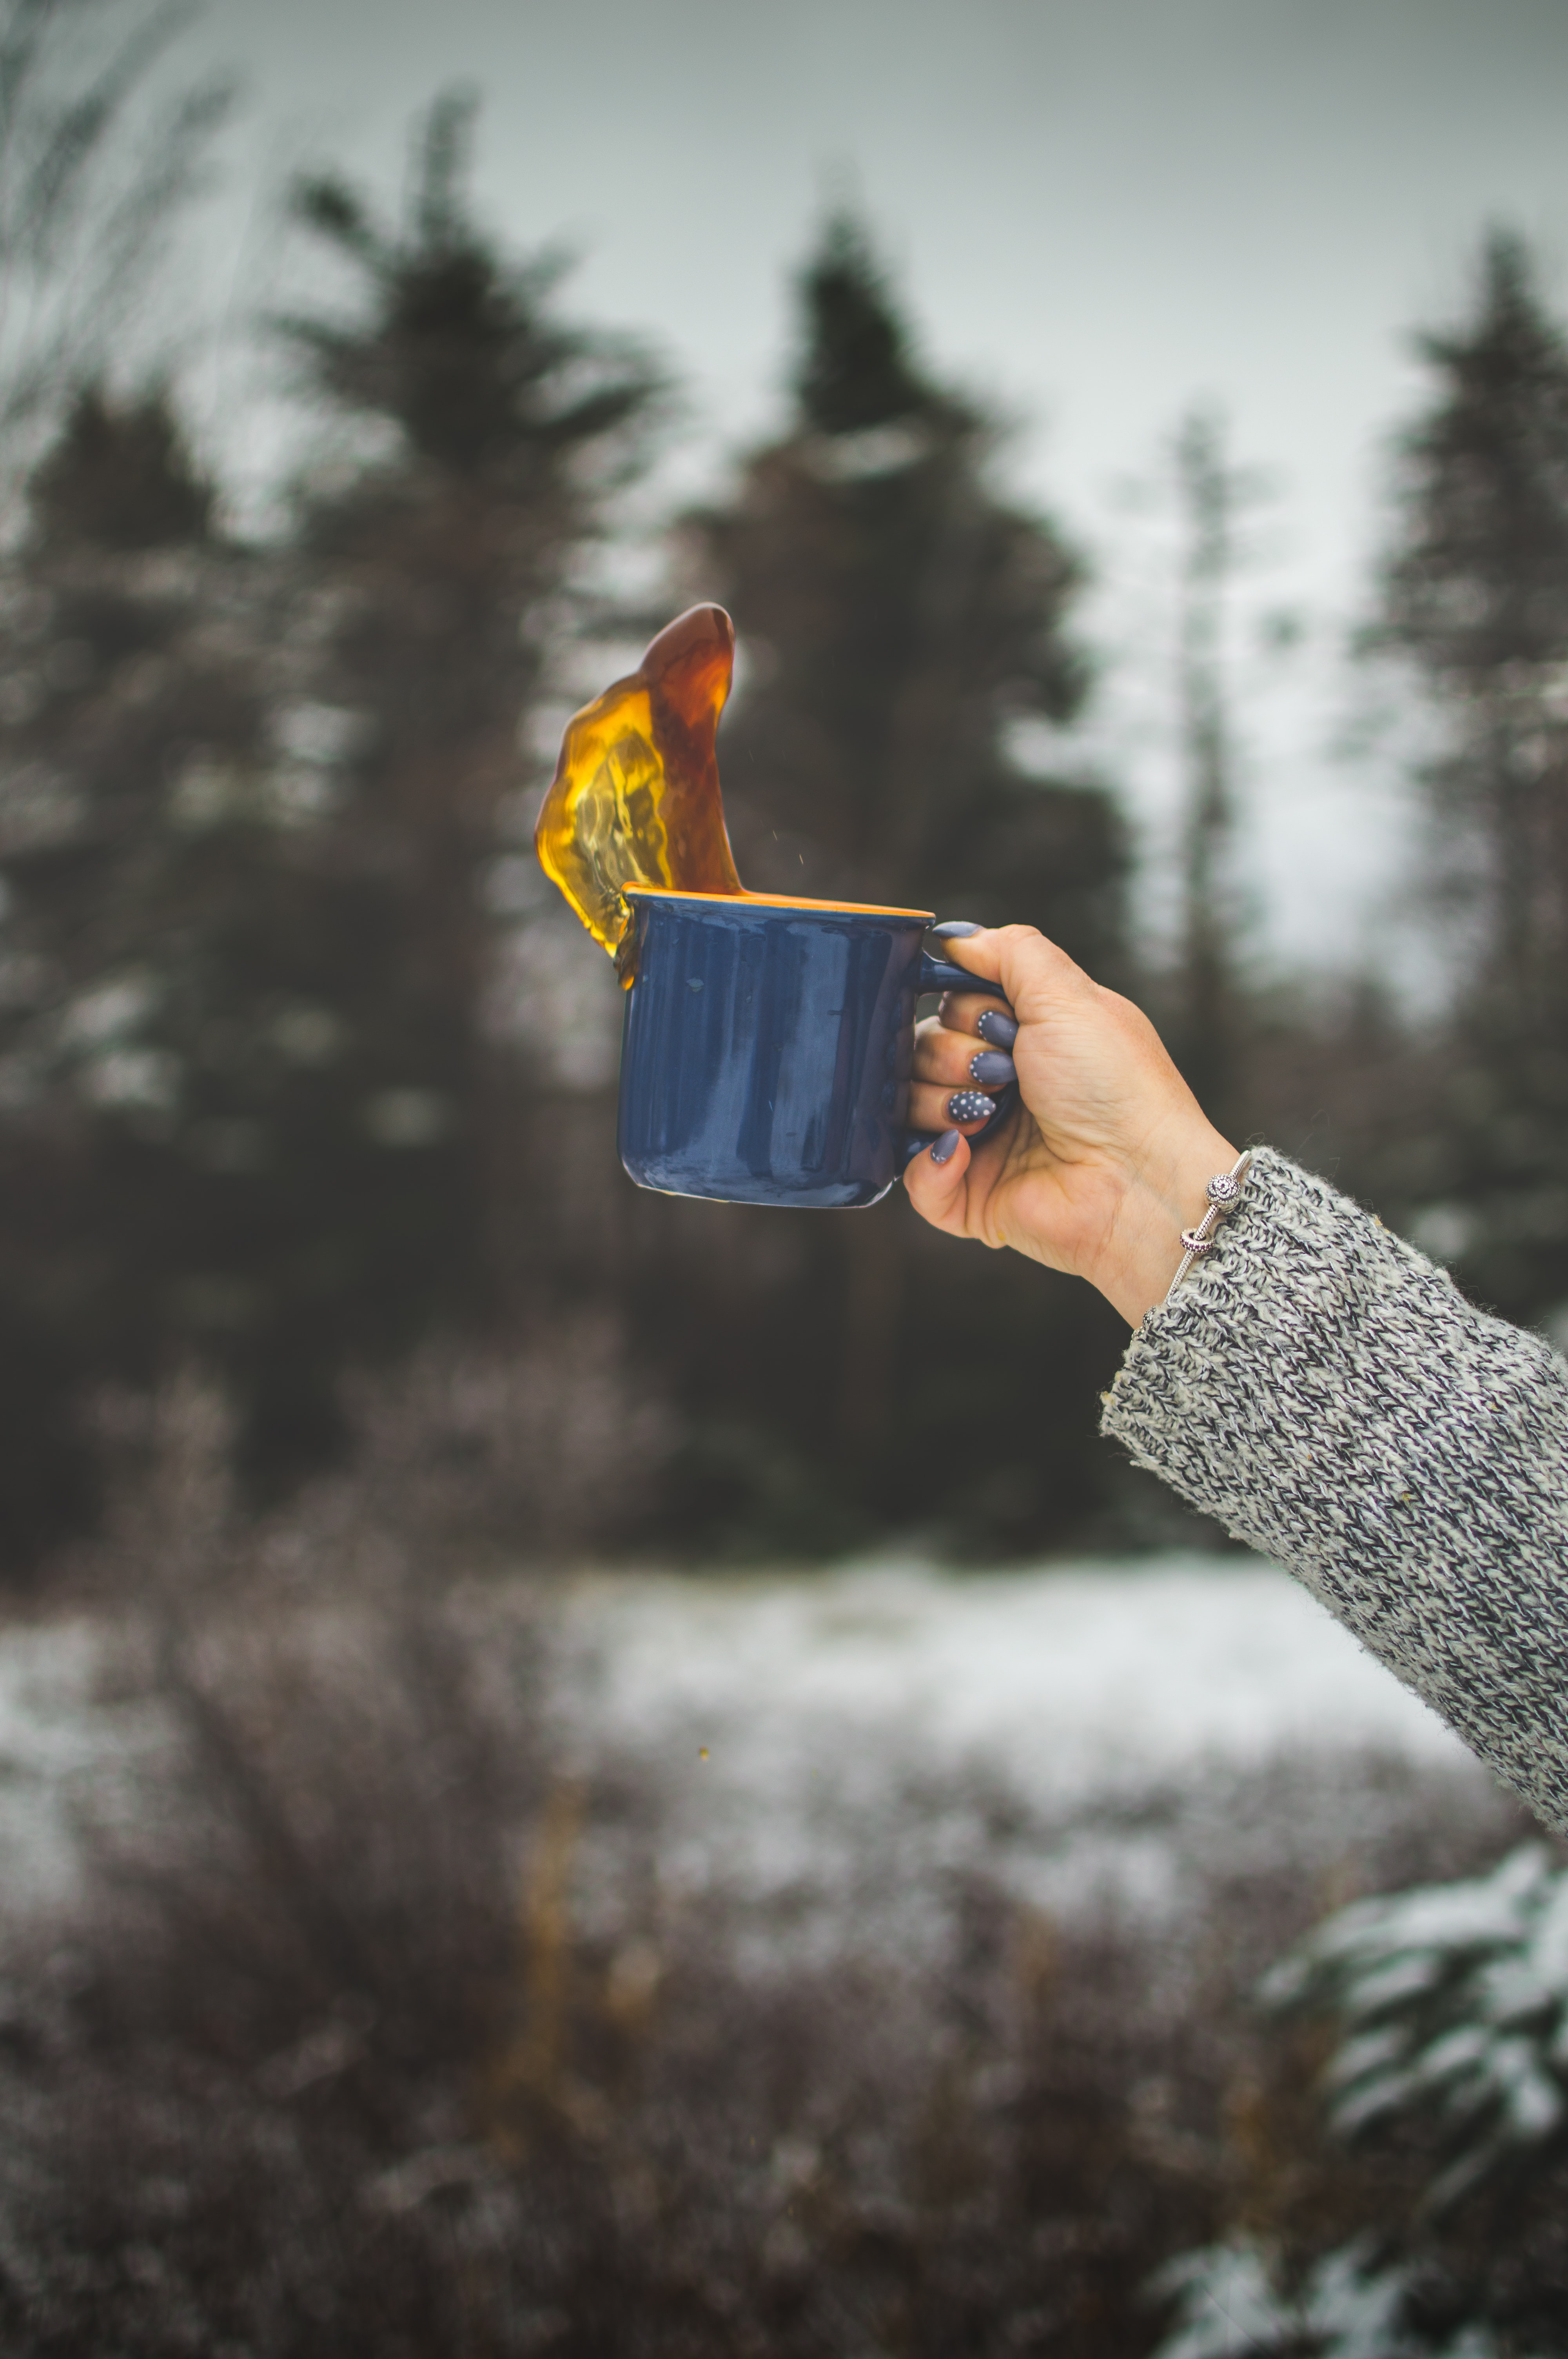 time lapse photo of woman holding blue ceramic mug with coffee spilled upward